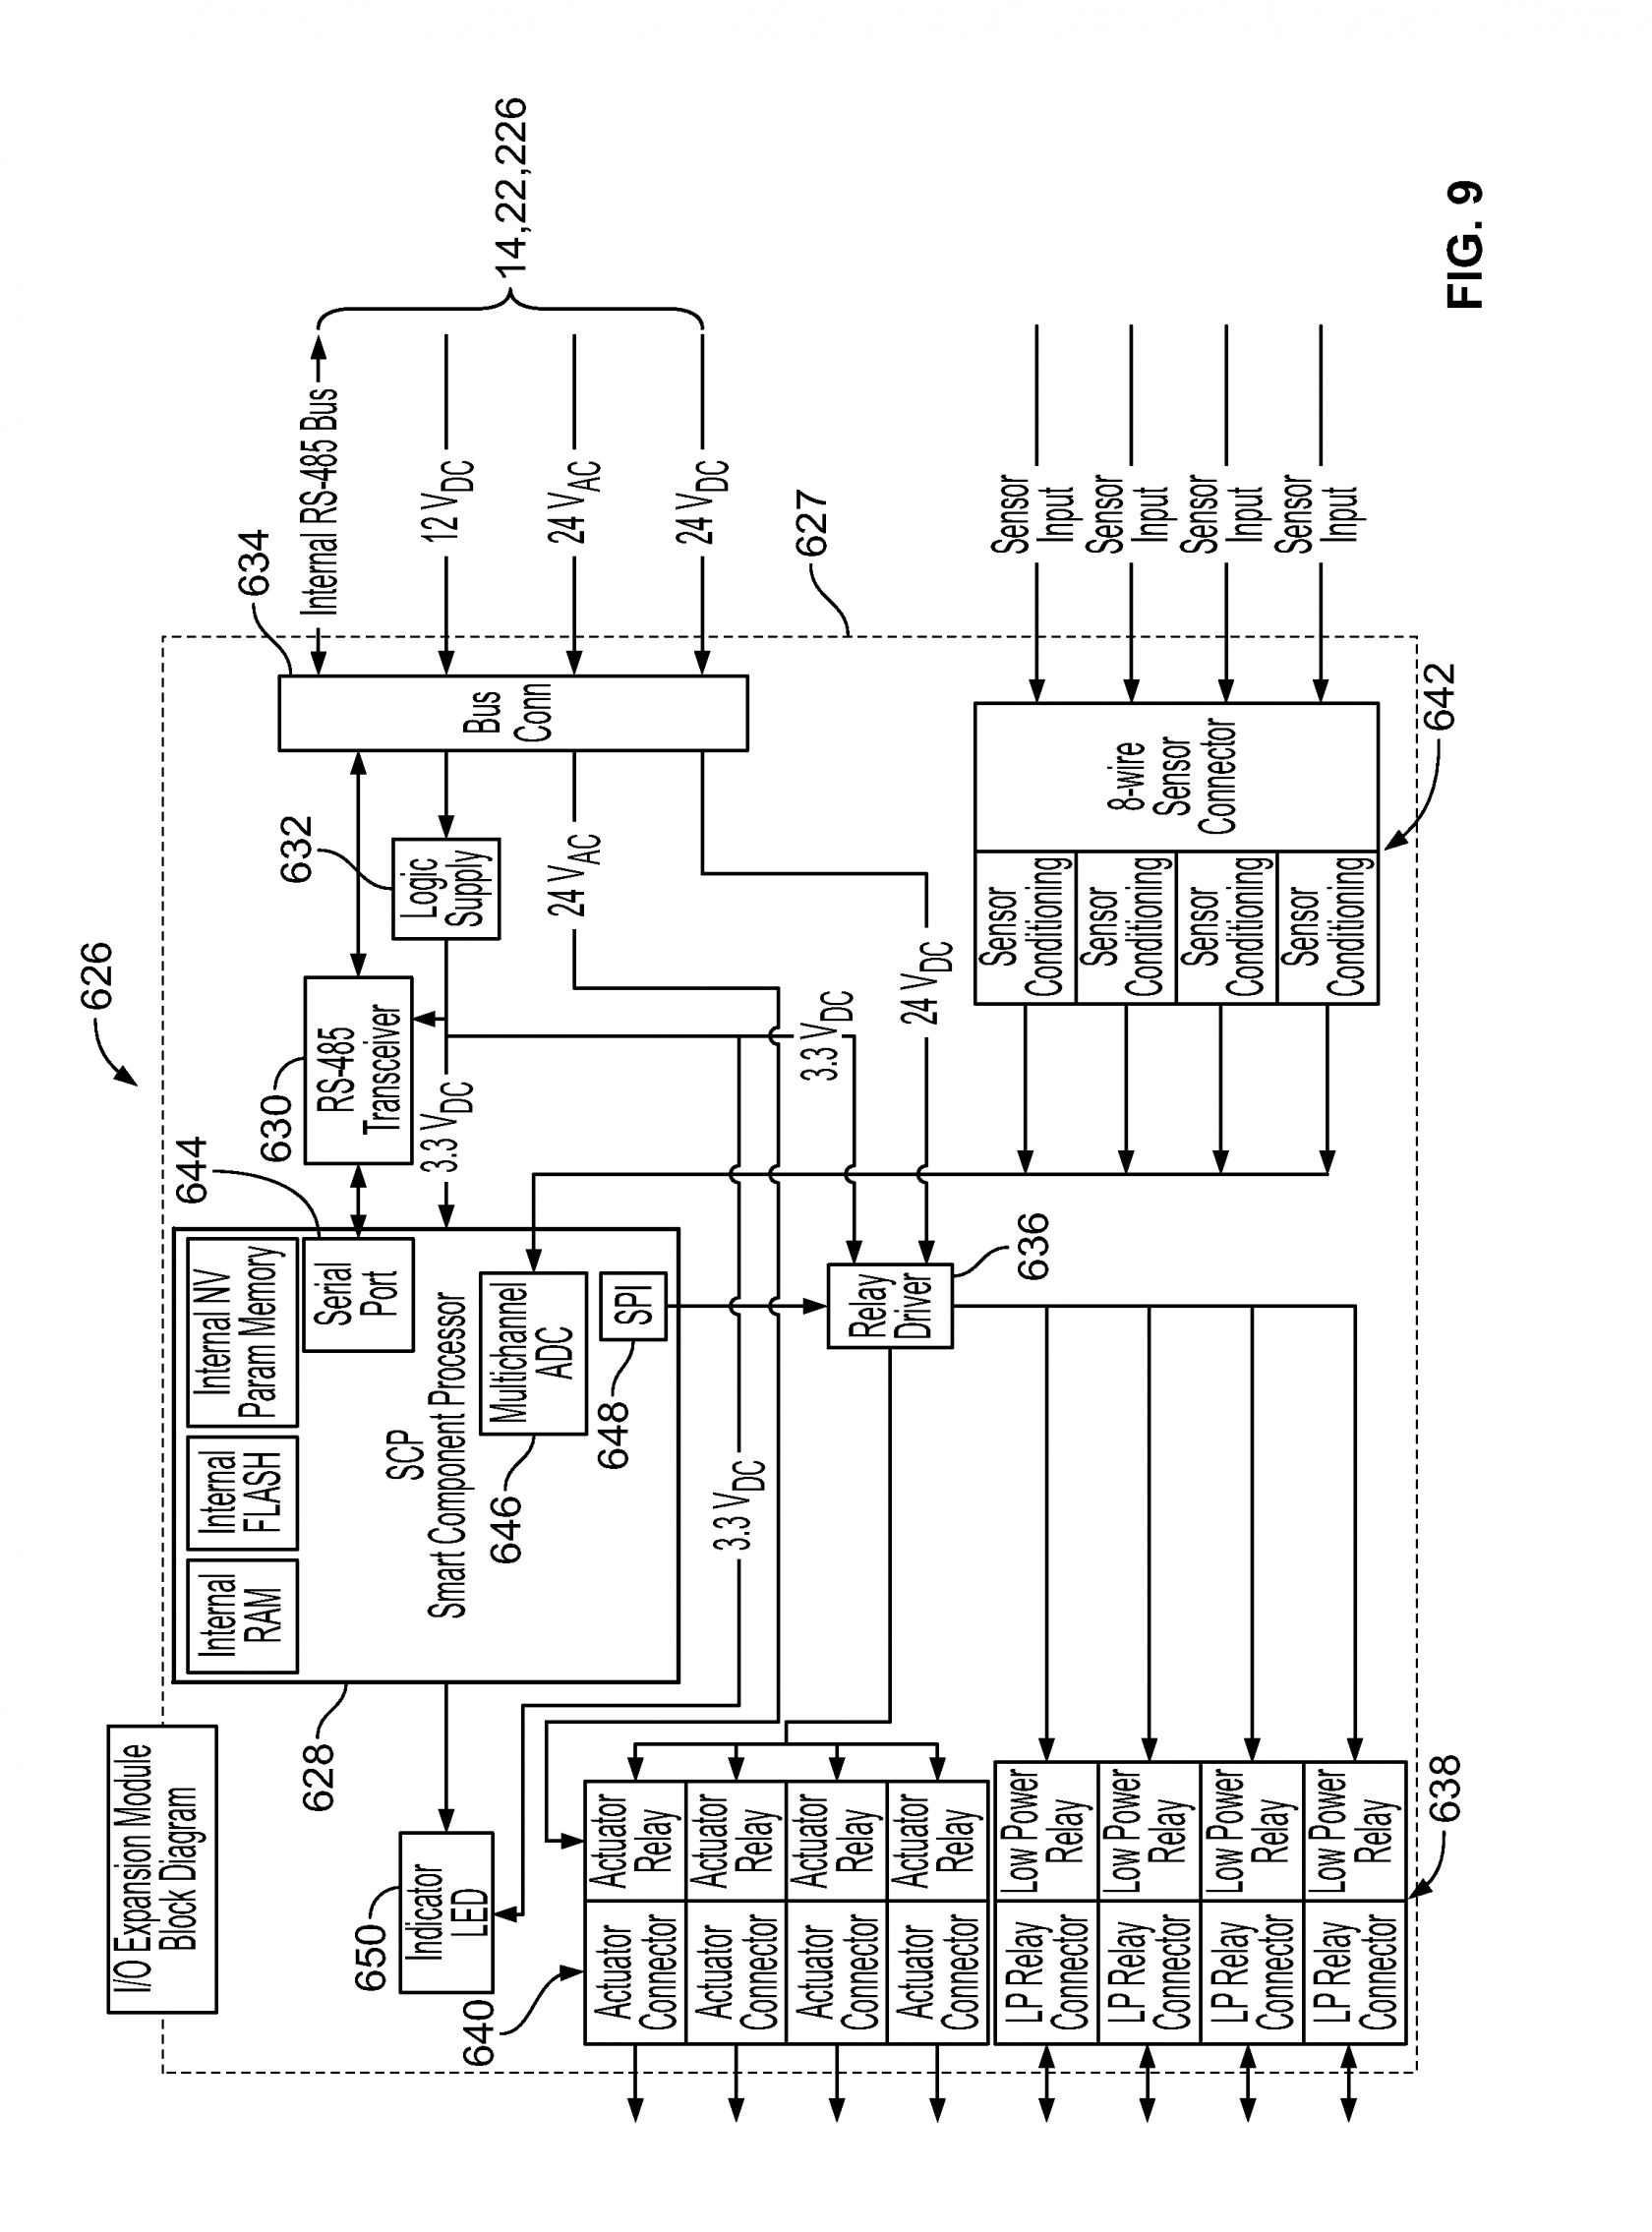 Thermospa Wiring Diagram Sample Acura Spa Systems Collection Elegant Sta Rite Pump Pool Ga Download